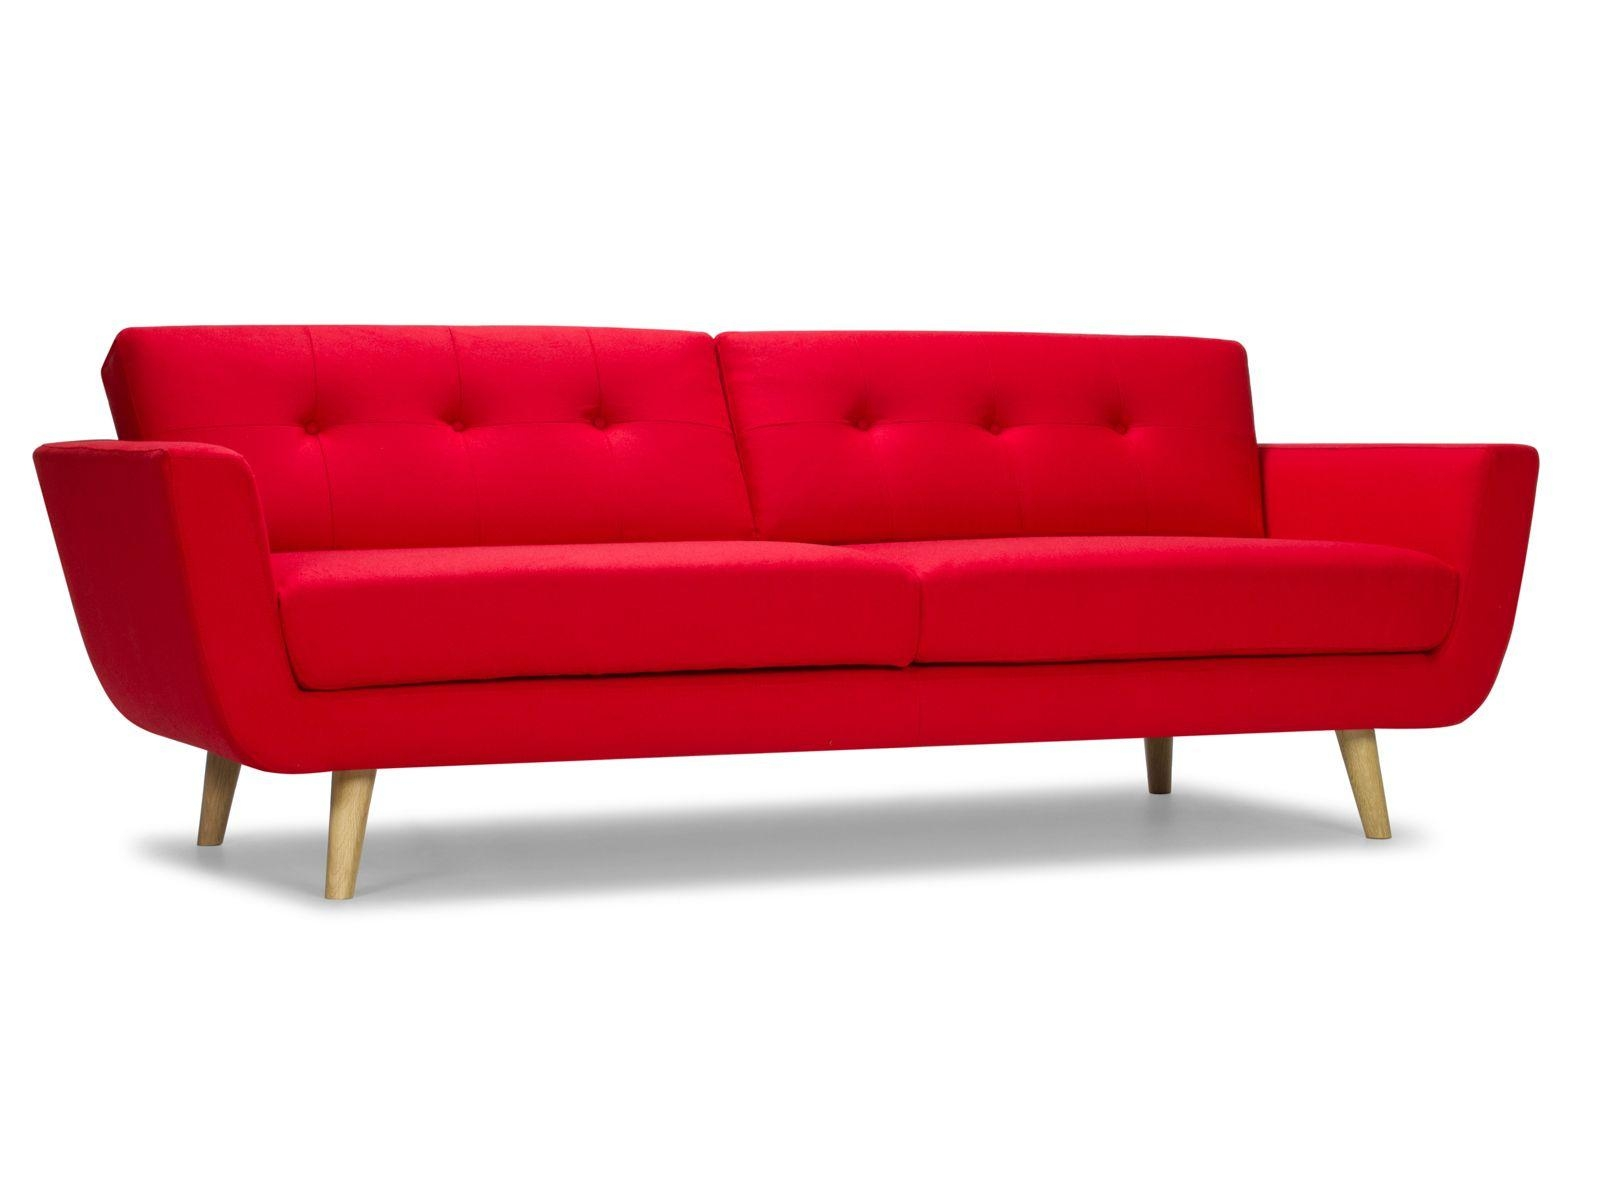 20 photos retro sofas and chairs sofa ideas for Modern sofas for sale